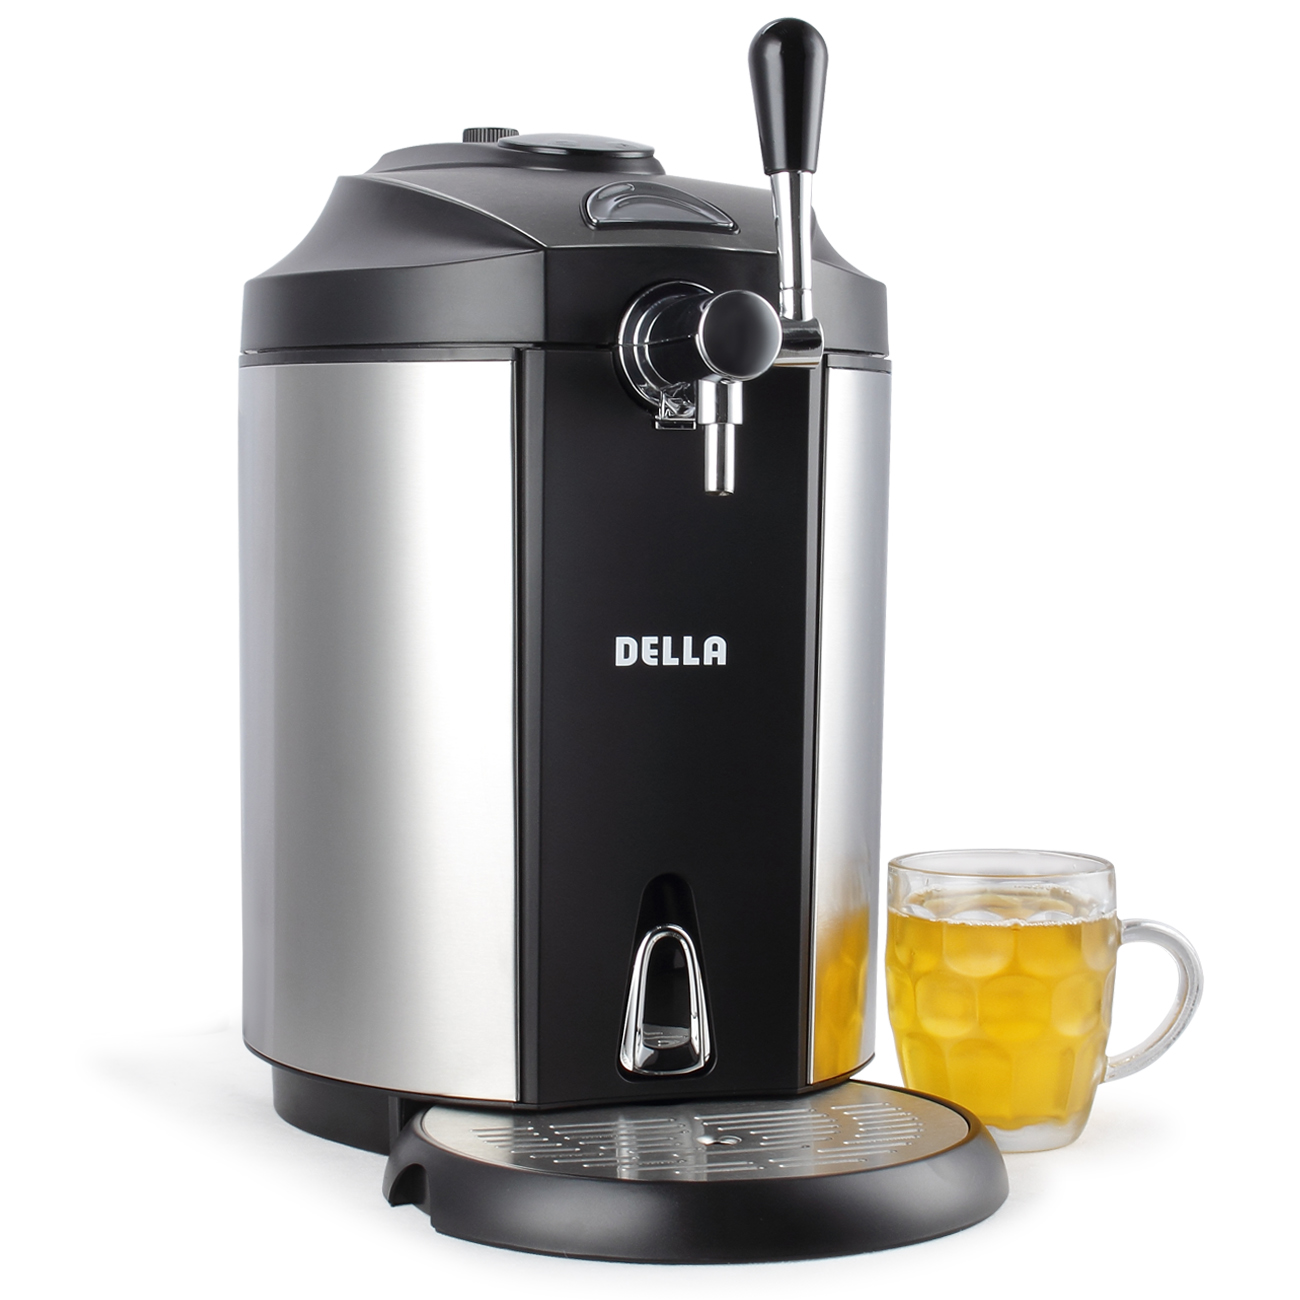 DELLA Mini Beer Kegerator Stainless Steel Portable System Micro Foam Technology Cold Draft... by Della